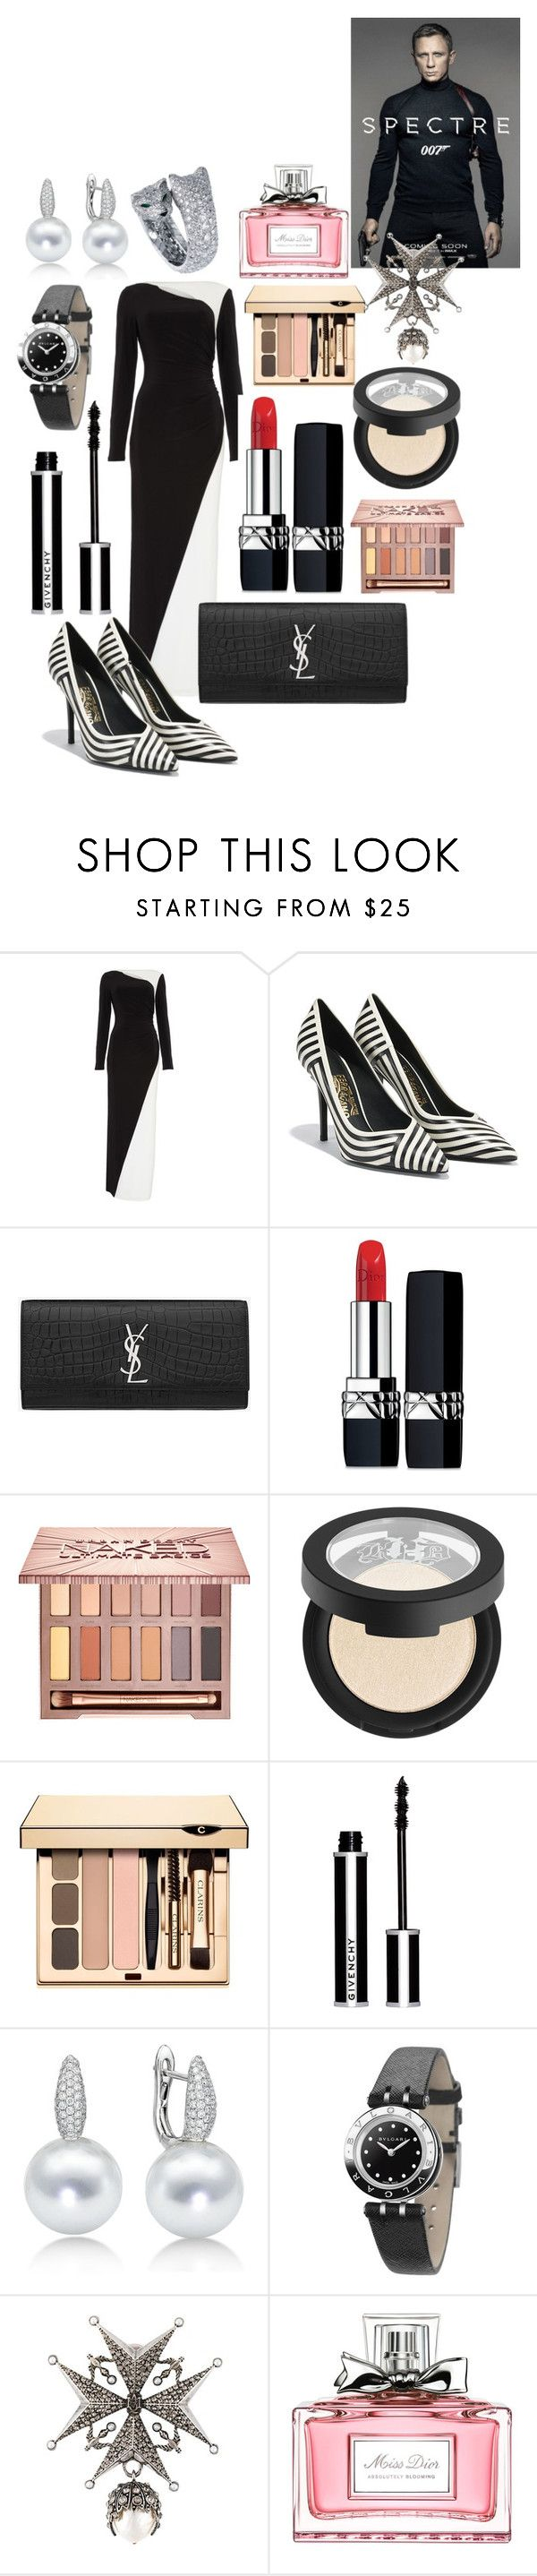 """""""Spectre(2015) Mexico City Premiere Outfit"""" by andreamartin24601 ❤ liked on Polyvore featuring Lauren Ralph Lauren, Salvatore Ferragamo, Yves Saint Laurent, Christian Dior, Urban Decay, Kat Von D, Clarins, Givenchy, Bulgari and Alexander McQueen"""